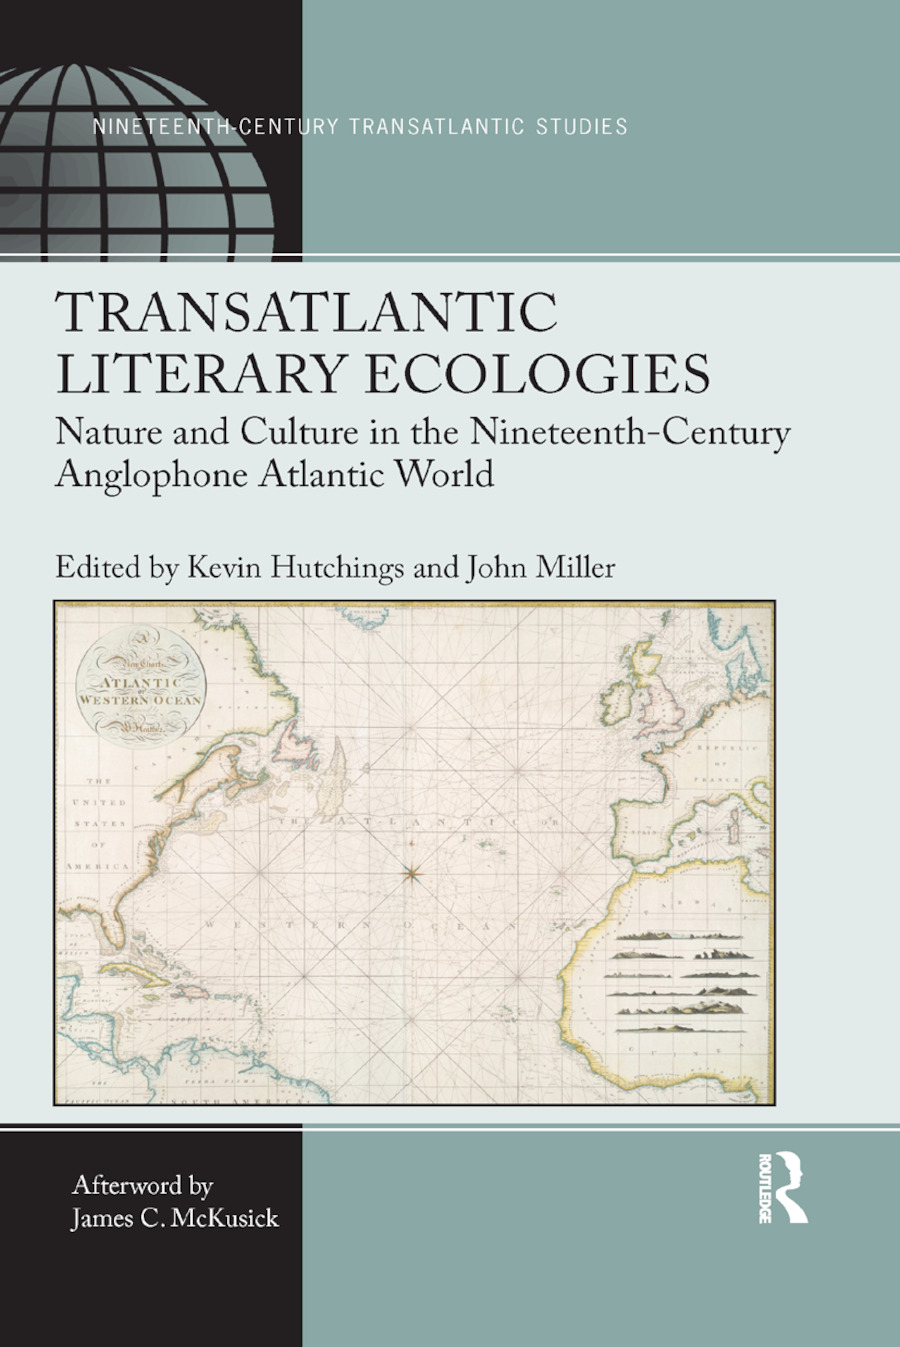 Transatlantic Literary Ecologies: Nature and Culture in the Nineteenth-Century Anglophone Atlantic World book cover